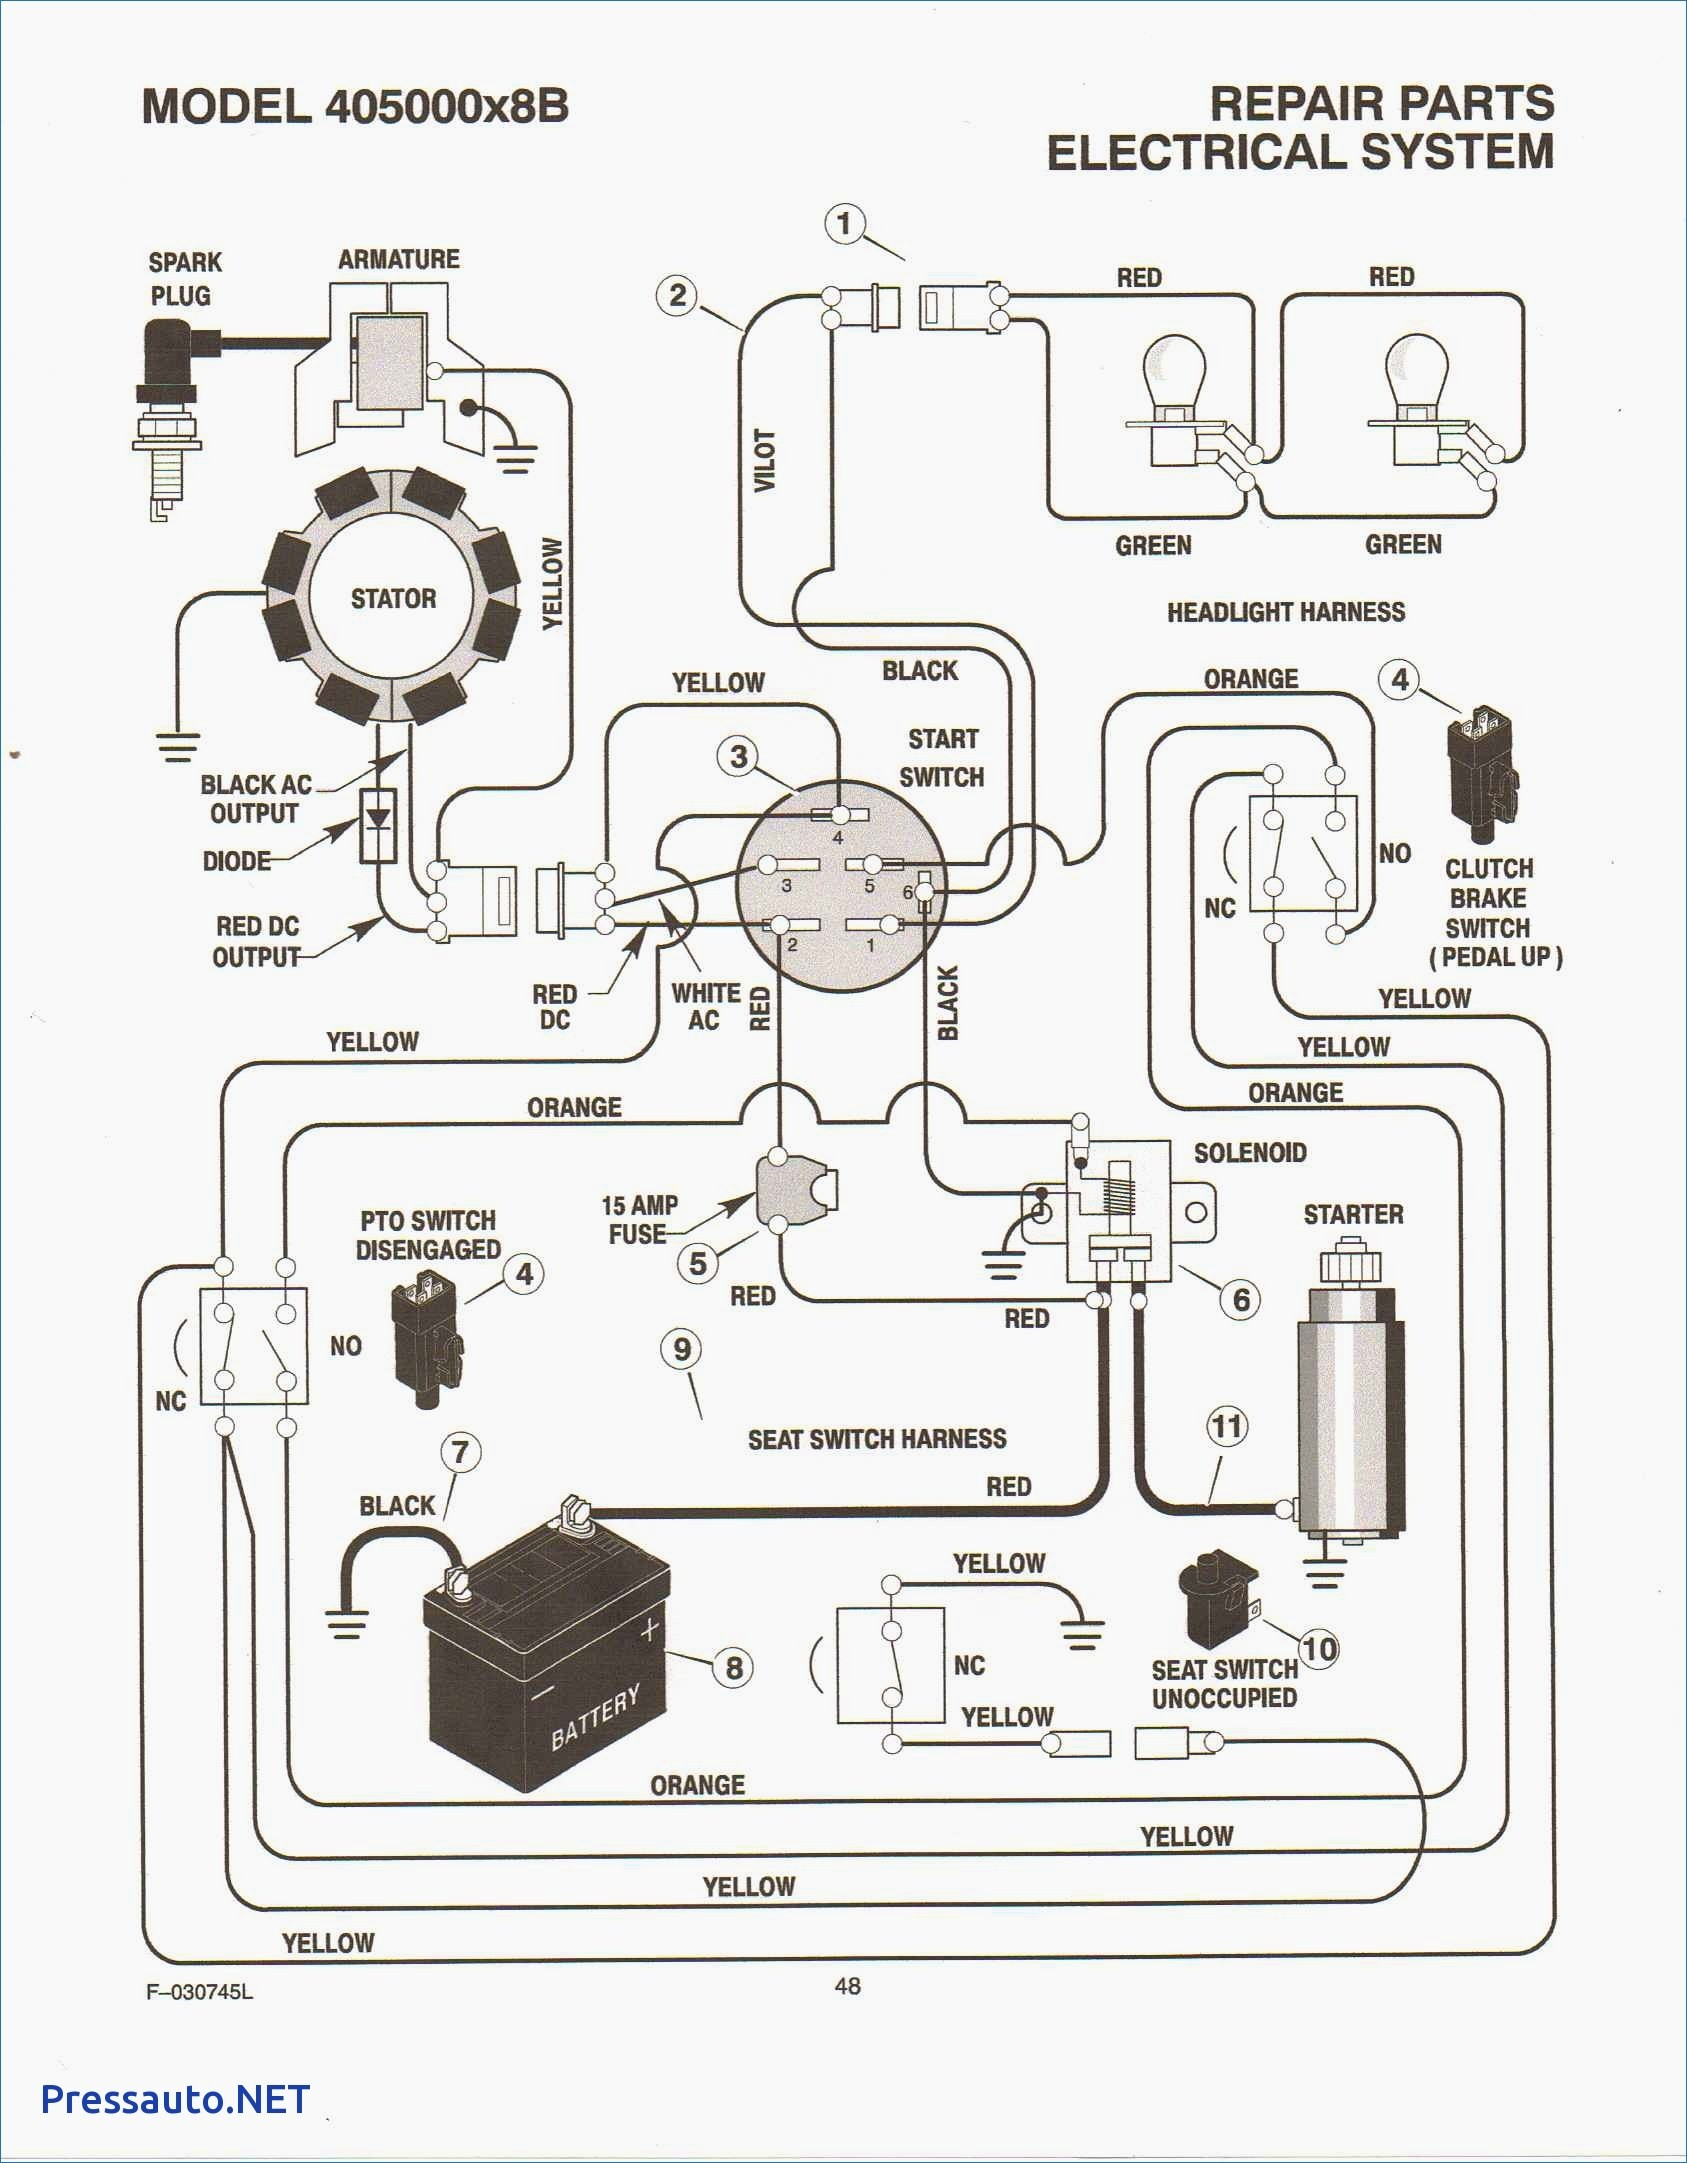 [SCHEMATICS_48IU]  ✦DIAGRAM BASED✦ Kohler K341 Wiring Diagram COMPLETED DIAGRAM BASE Wiring  Diagram - DARRYL.DONAGHUE.TAPEDIAGRAM.PCINFORMI.IT | K301 Wiring Diagram |  | Diagram Based Completed Edition - PcInformi